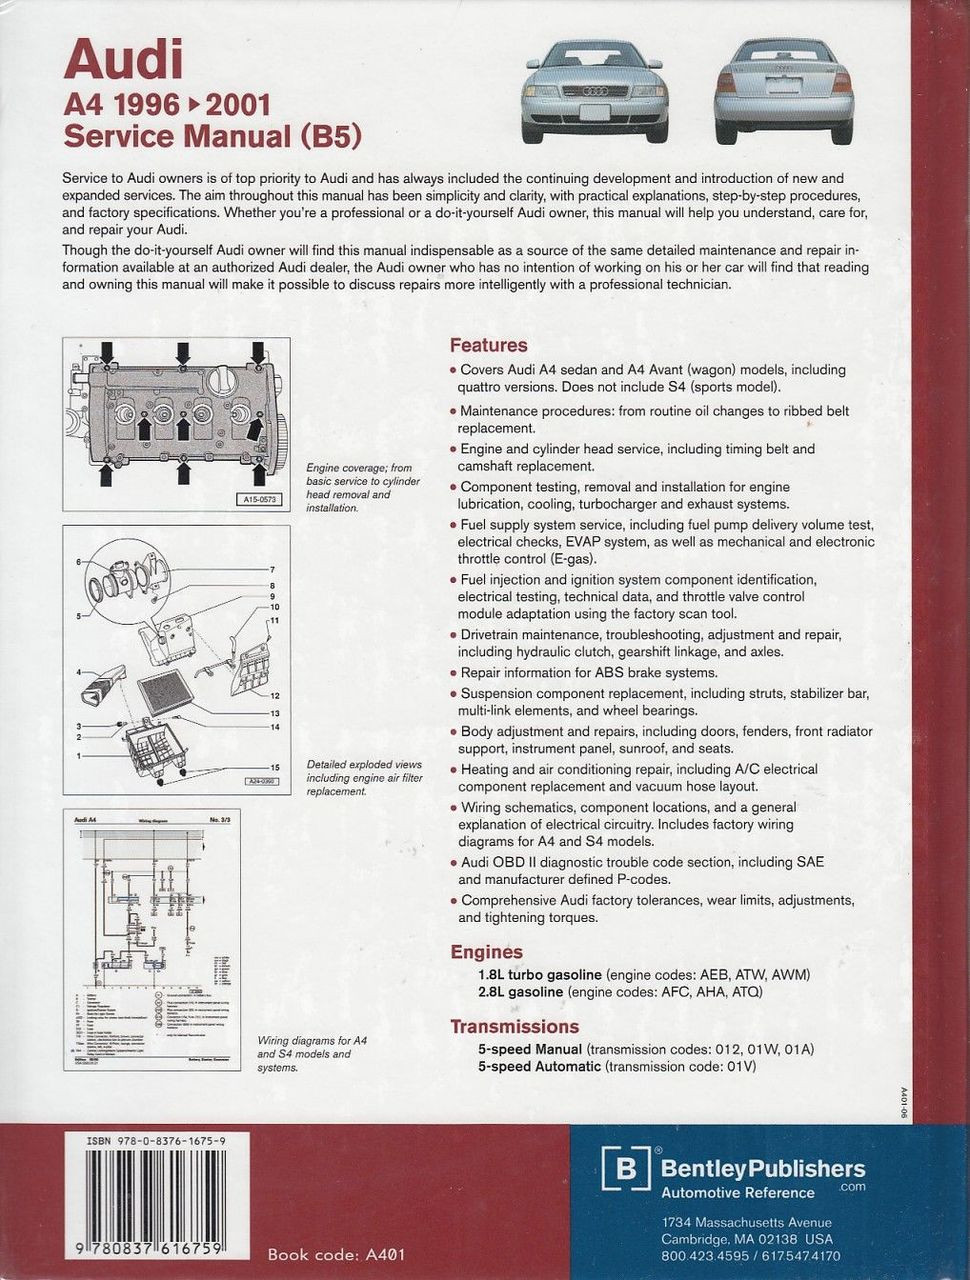 audi a4 1996 2001 workshop manual back cover [ 970 x 1280 Pixel ]